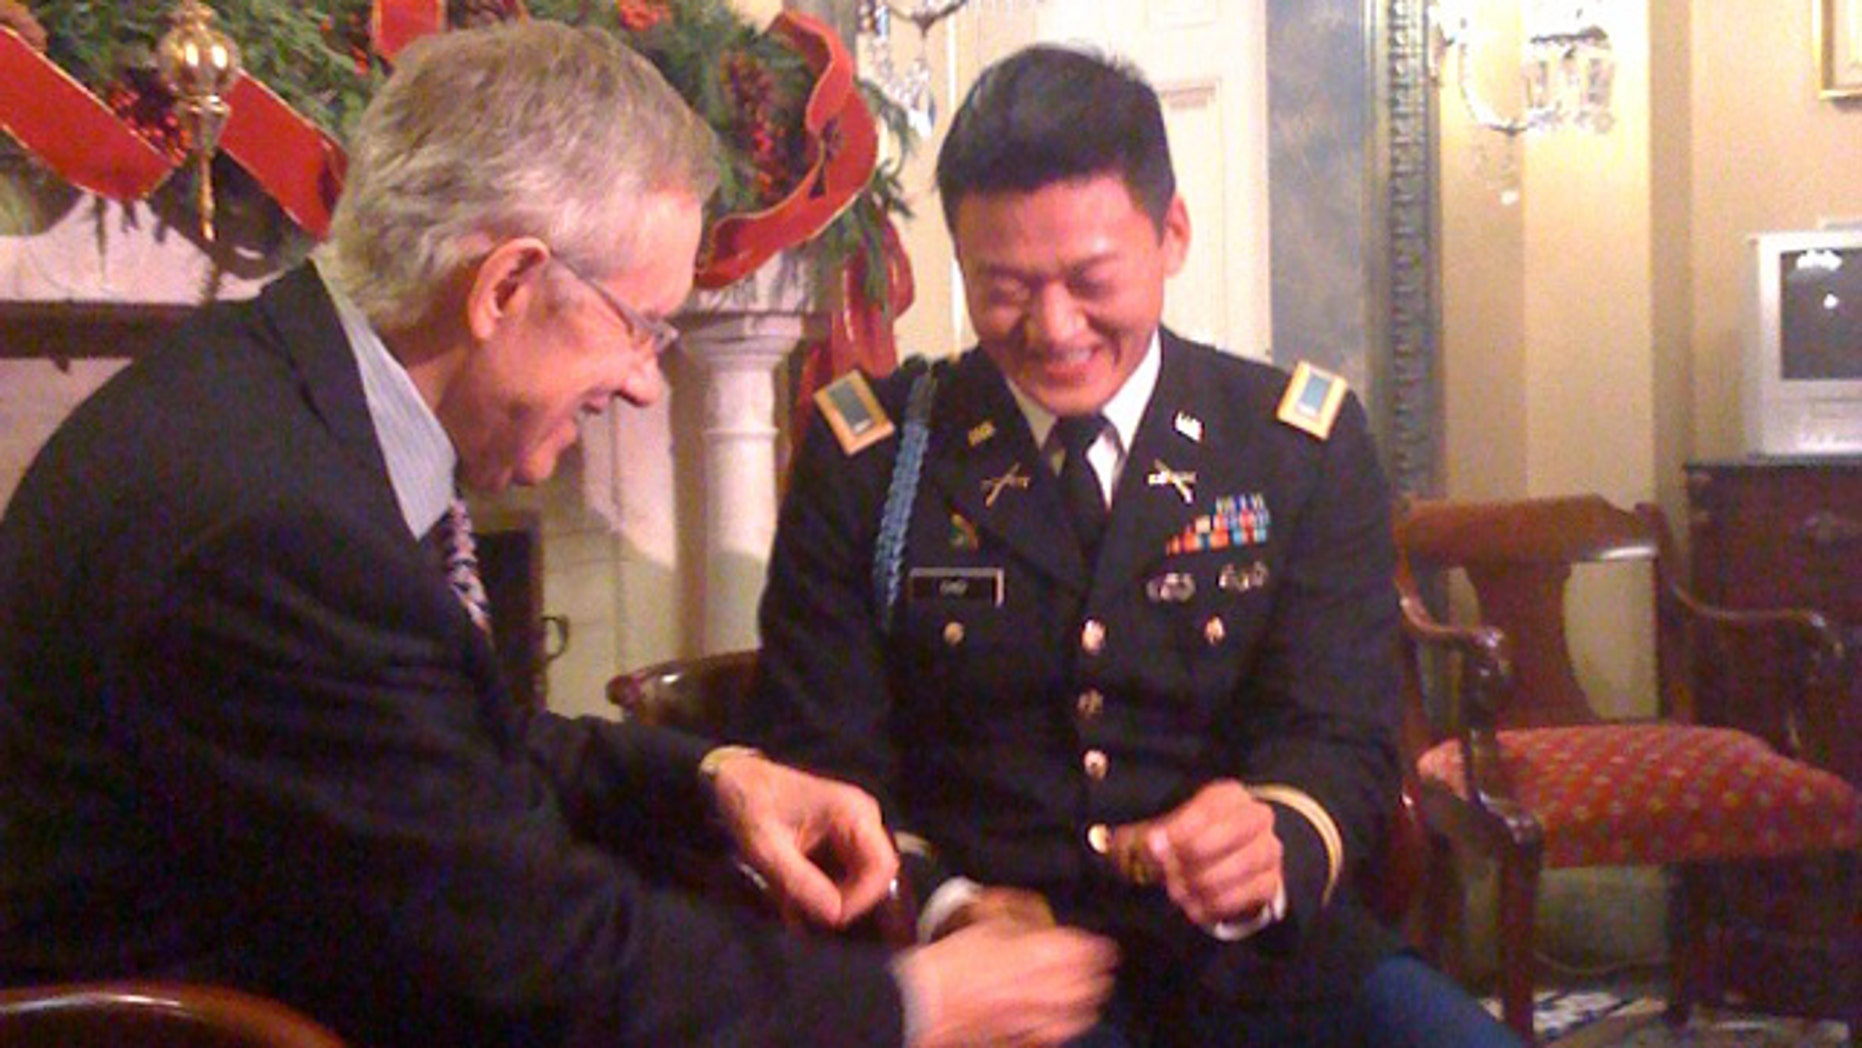 Wednesday: Senate Majority Leader Harry Reid hands gay rights activist Lt. Dan Choi his West Point graduation ring after President Obama signed the repeal of don't ask, don't tell.